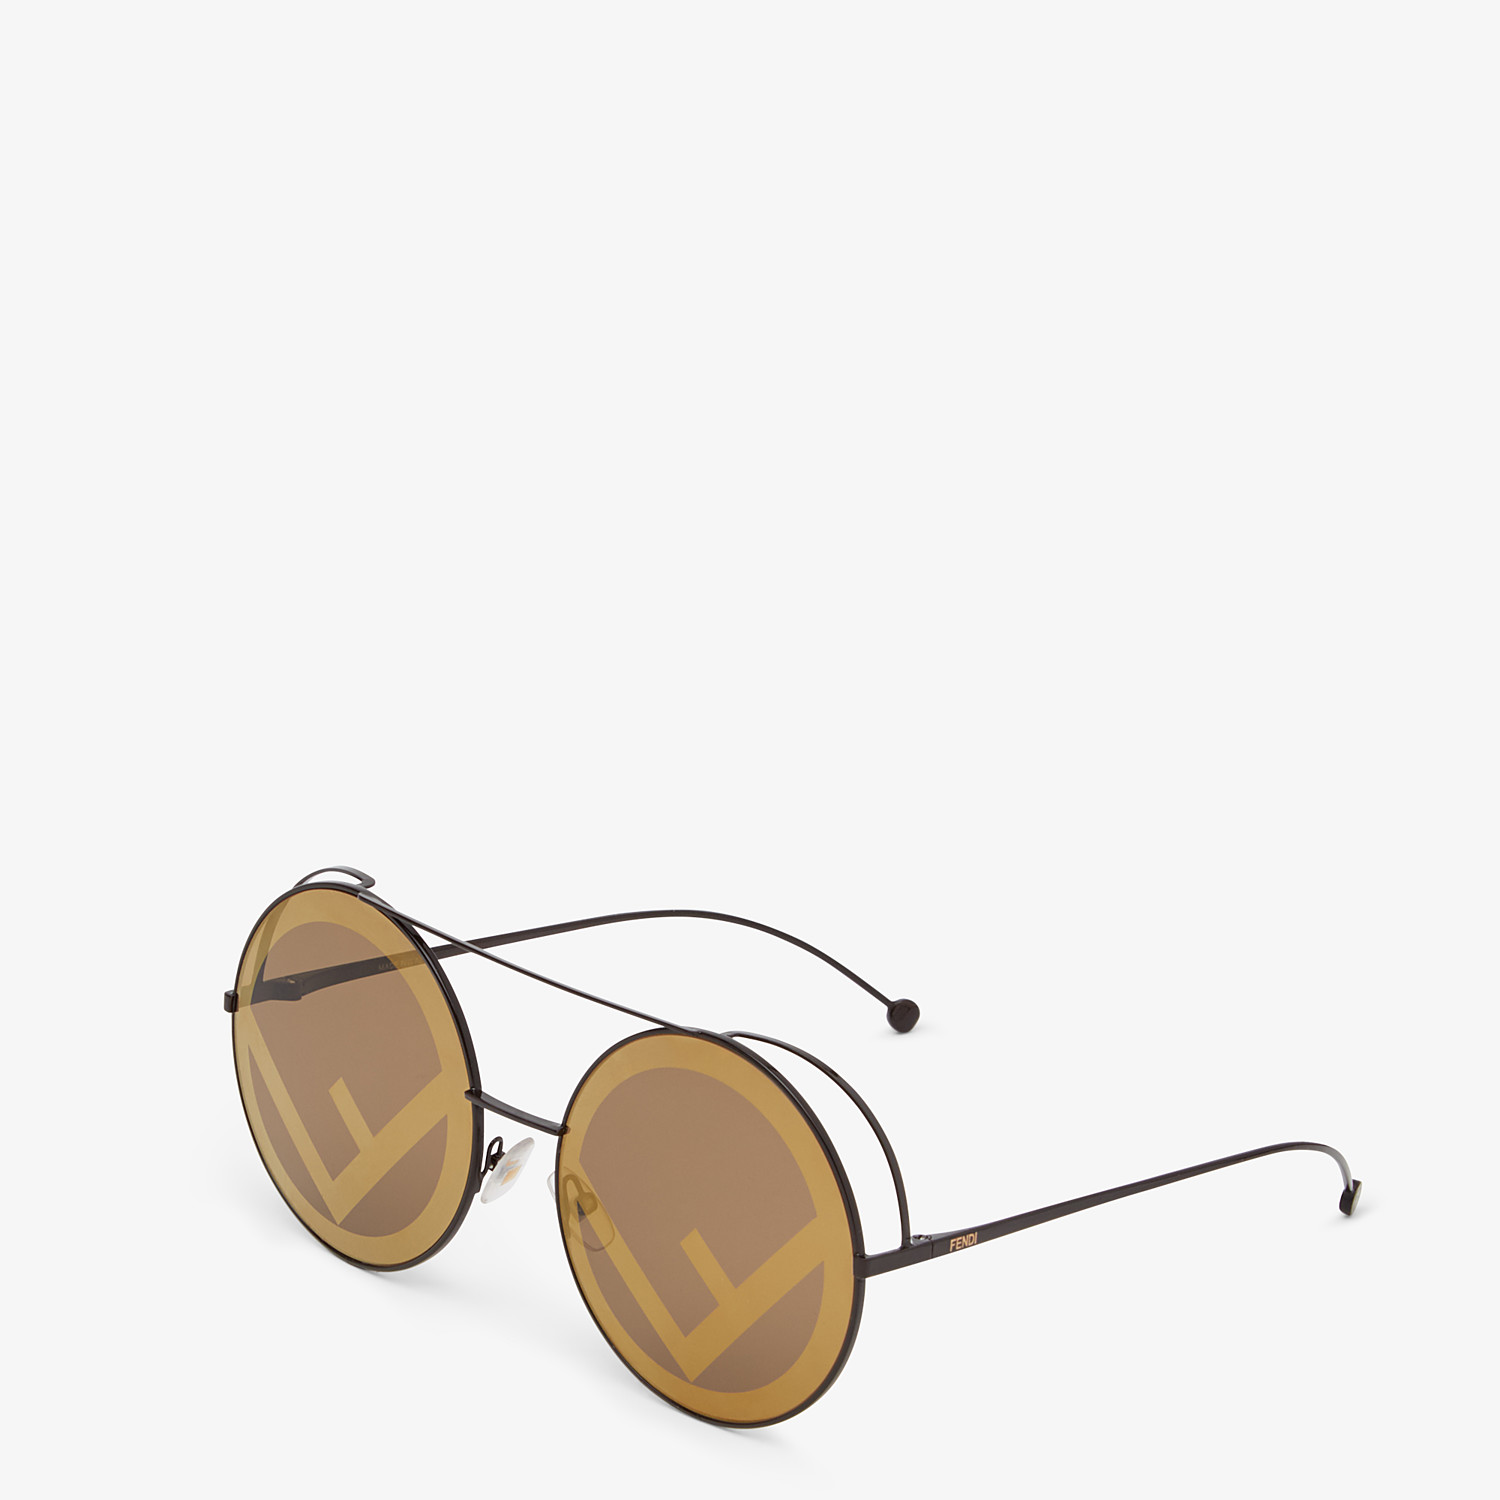 FENDI RUN AWAY - Brown sunglasses - view 2 detail